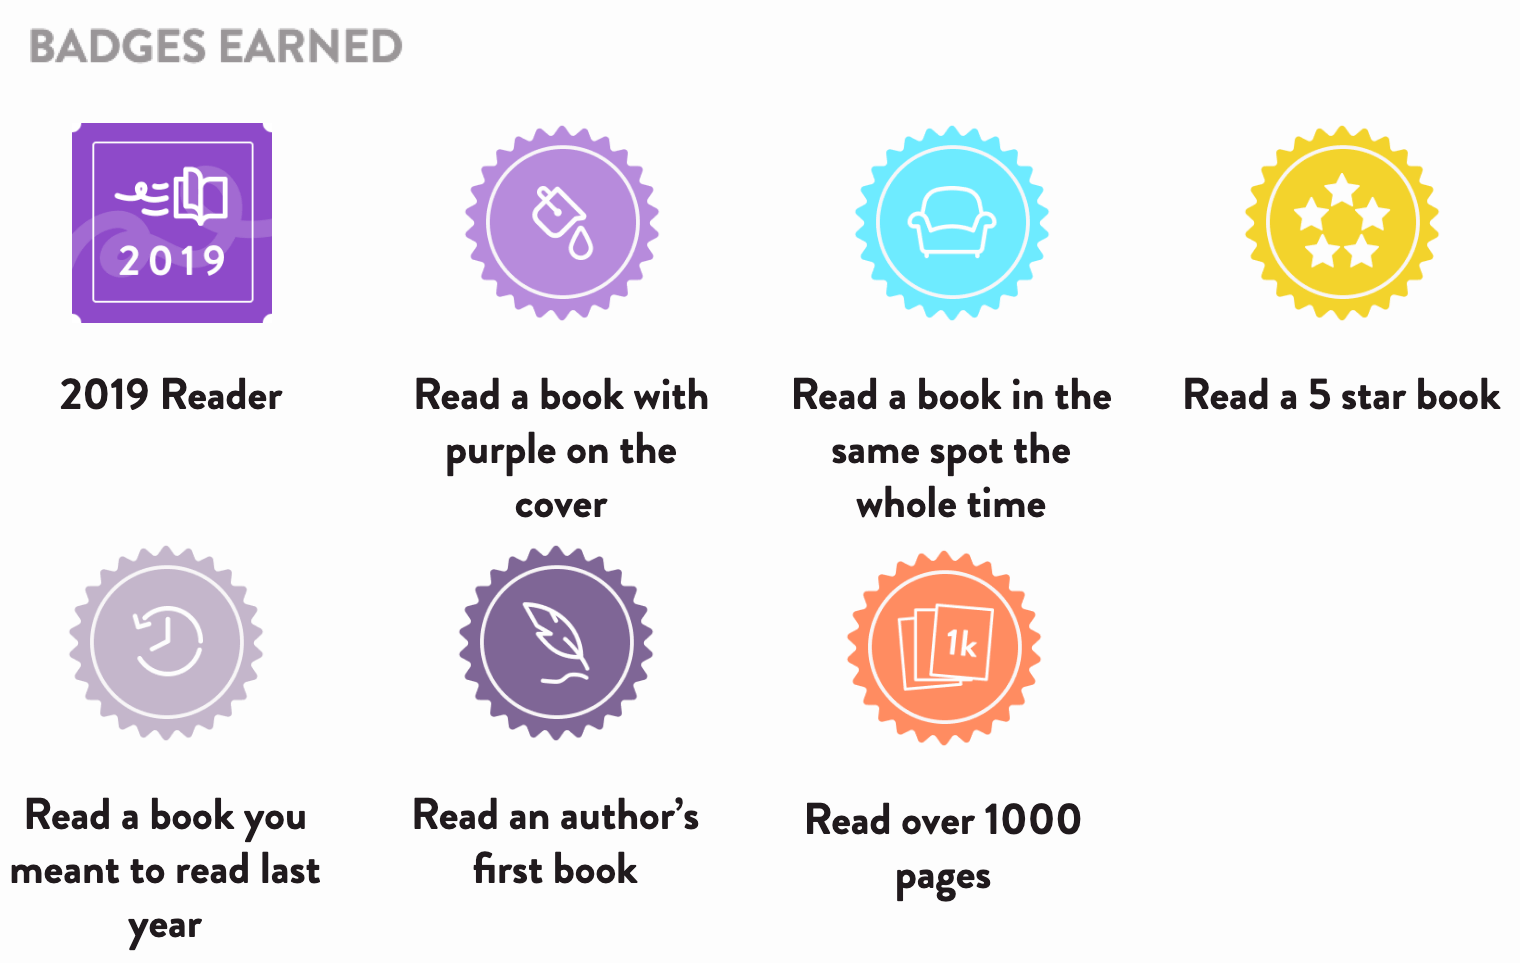 The Reading Rush badges I earned: 2019 Reader, Read a book with purple on the cover, Read a book in the same spot the whole time, Read a 5 star book, Read a book you meant to read last year, Read an author's first book, Read over 1000 pages (7 total)